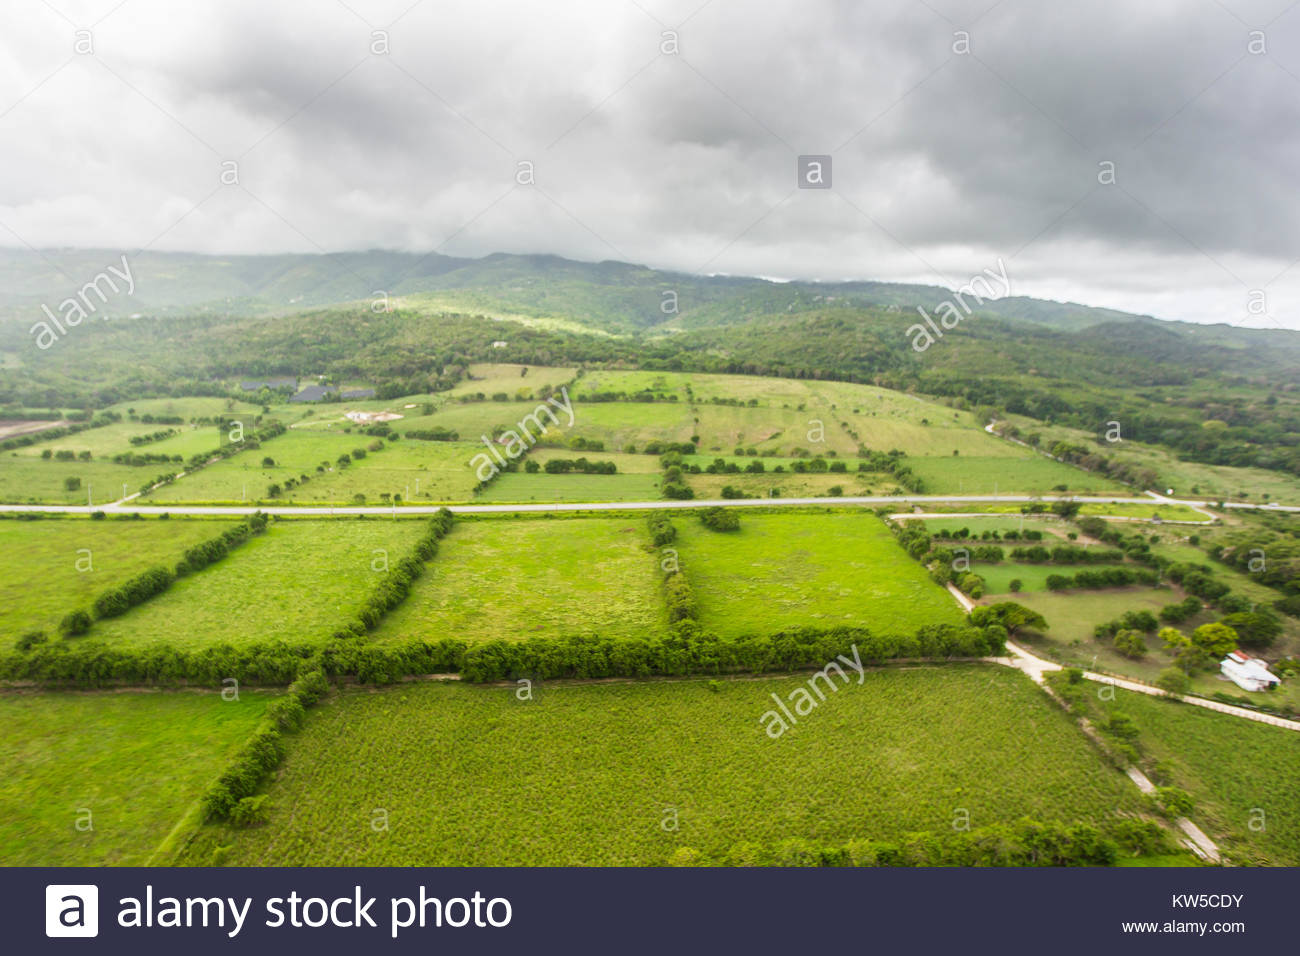 An aerial view of fertile farm lands in the heart Jamaica. - Stock Image